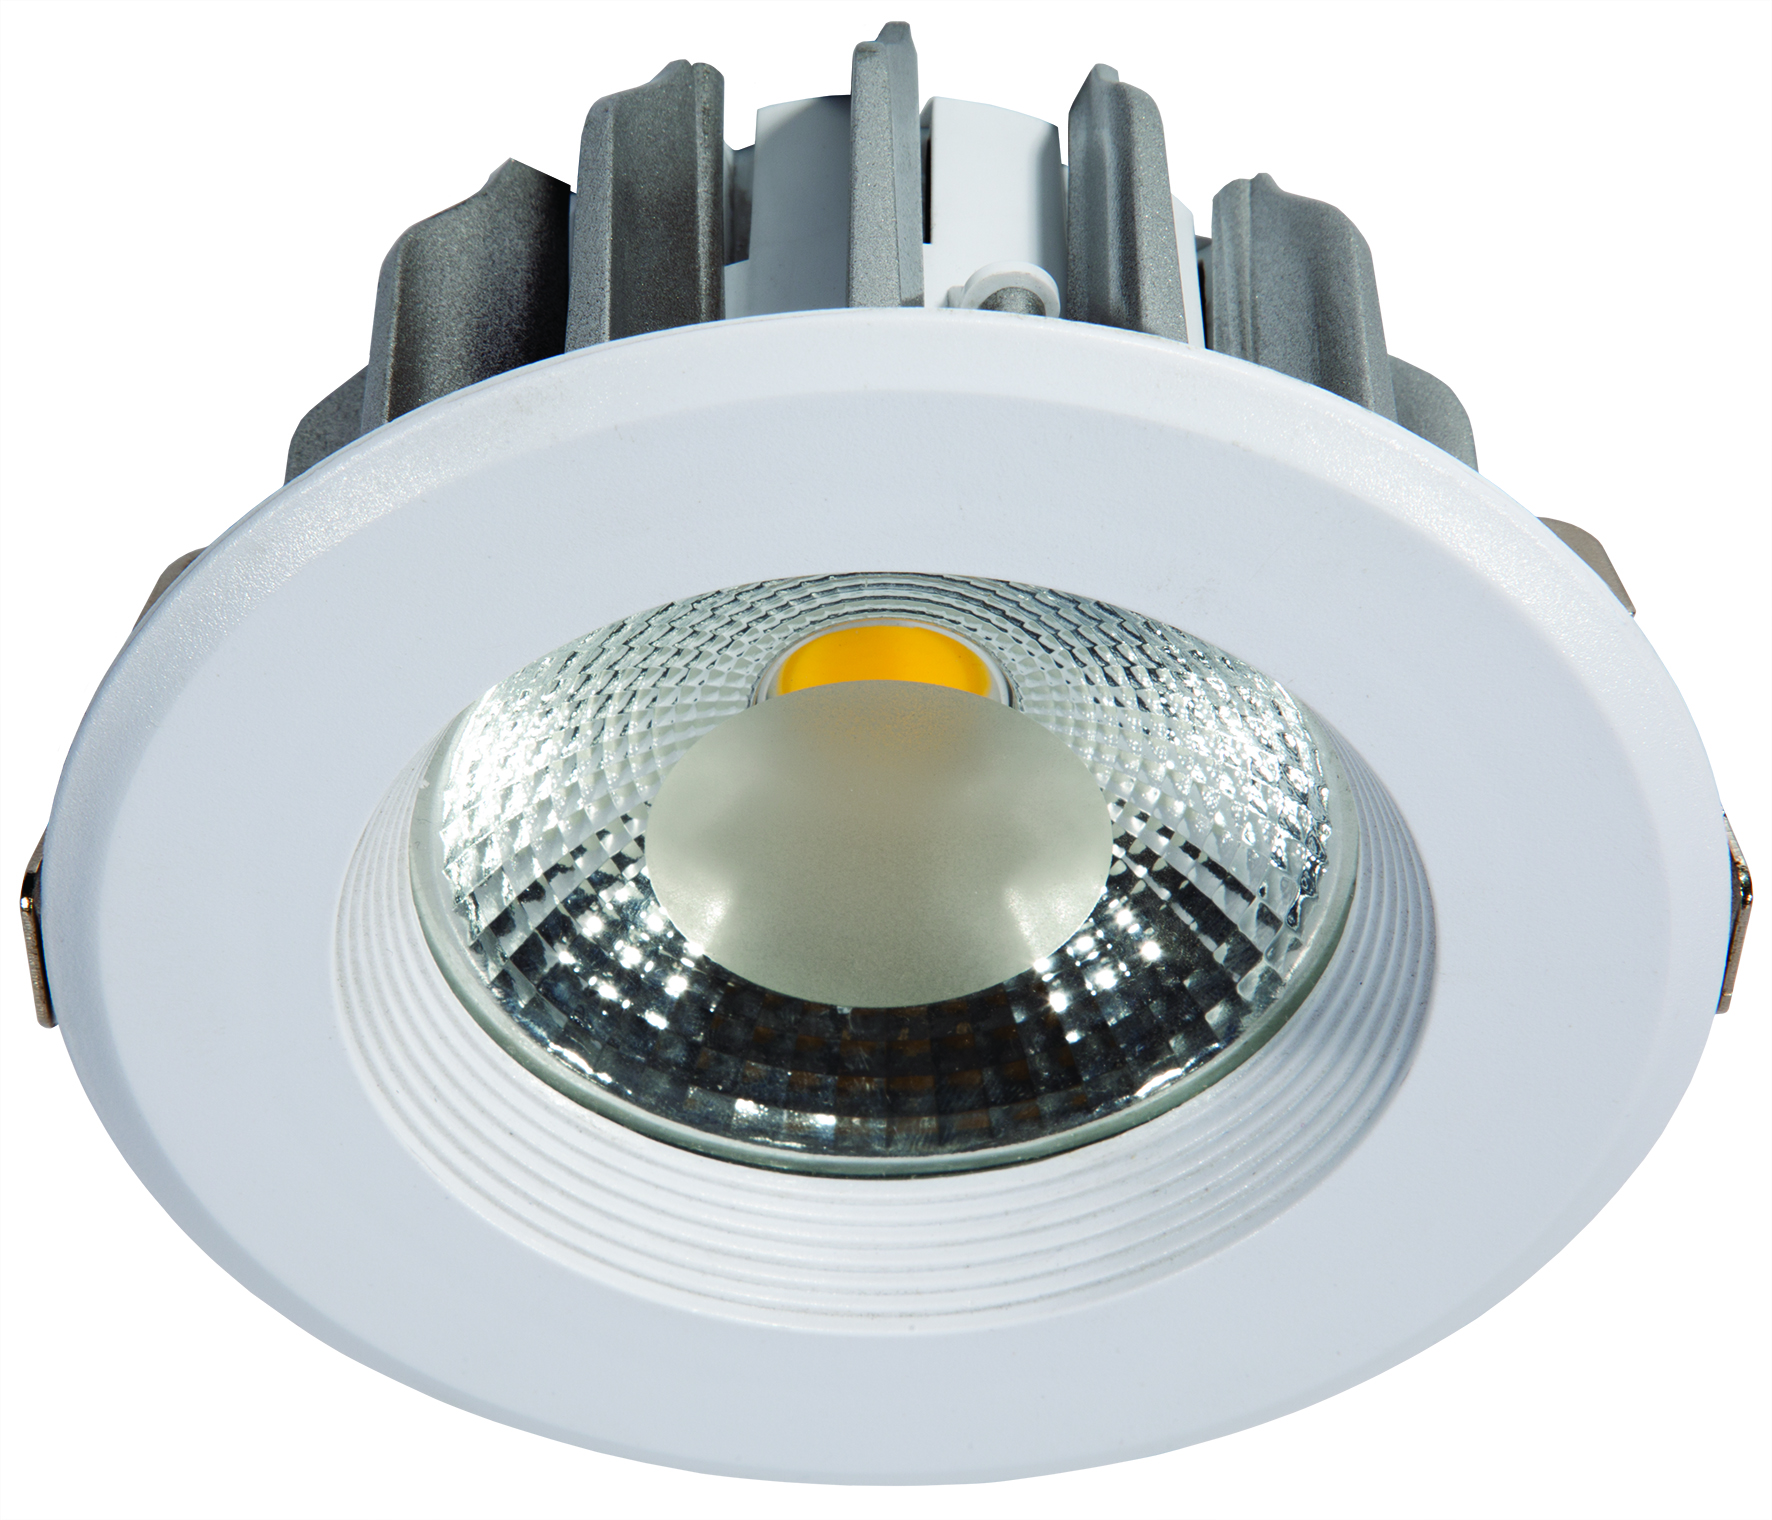 REELTECH medium recessed LED downlight light dali dimmable emergency 0 10v wireless lighting control